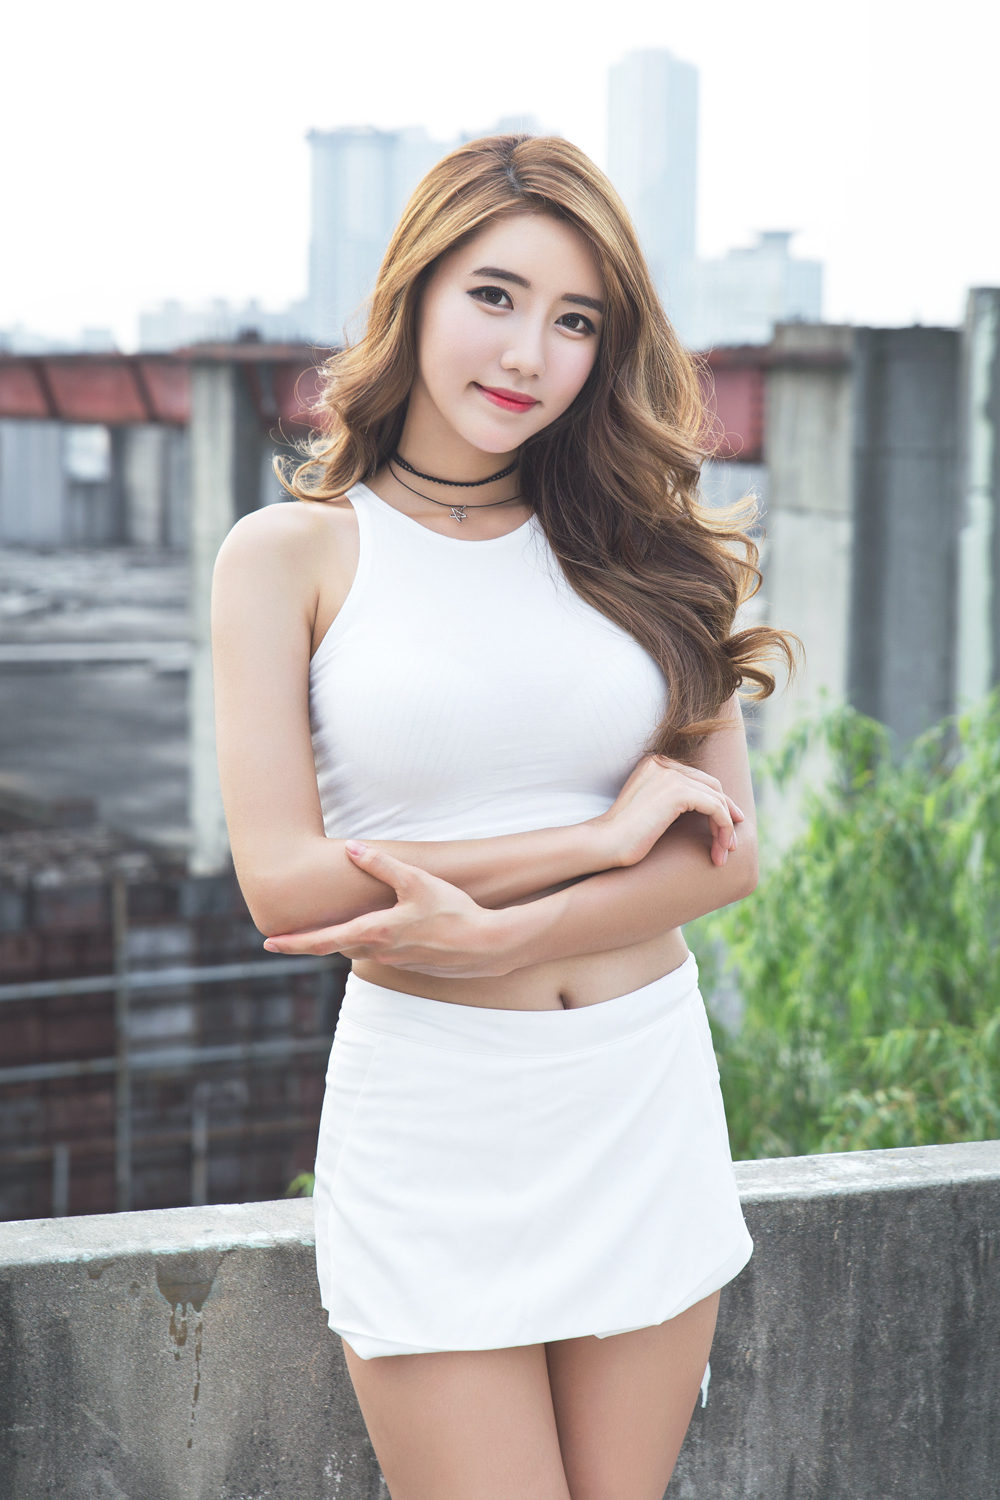 Rookie Girl-Group Member's Skirt Rips Off In Shocking ...